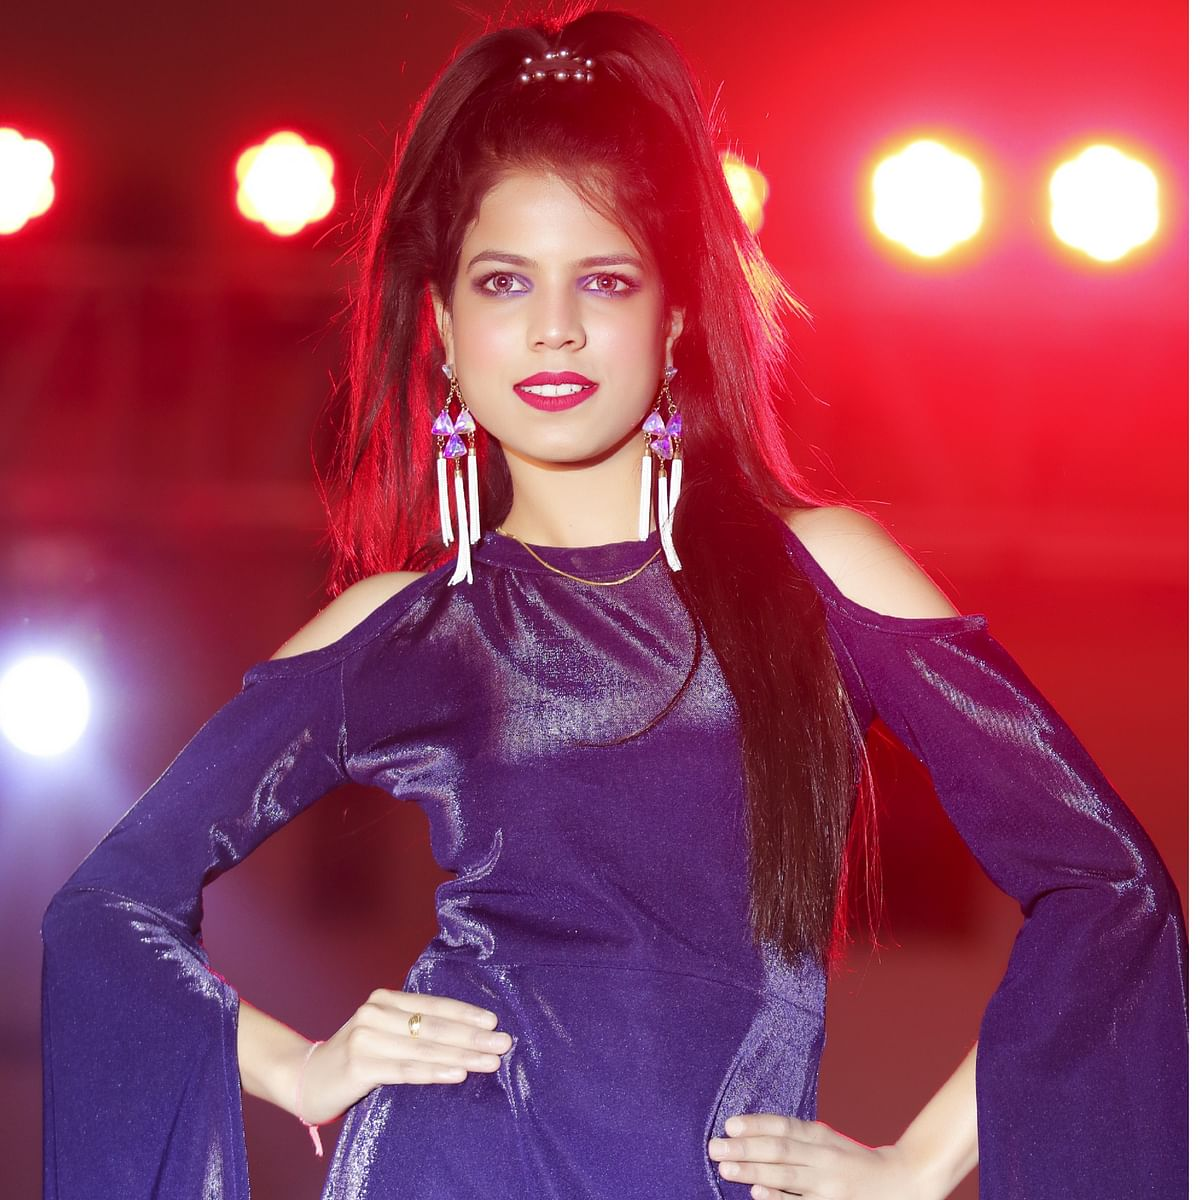 Madhya Pradesh: Local lass from Dhar selected for Miss India International contest